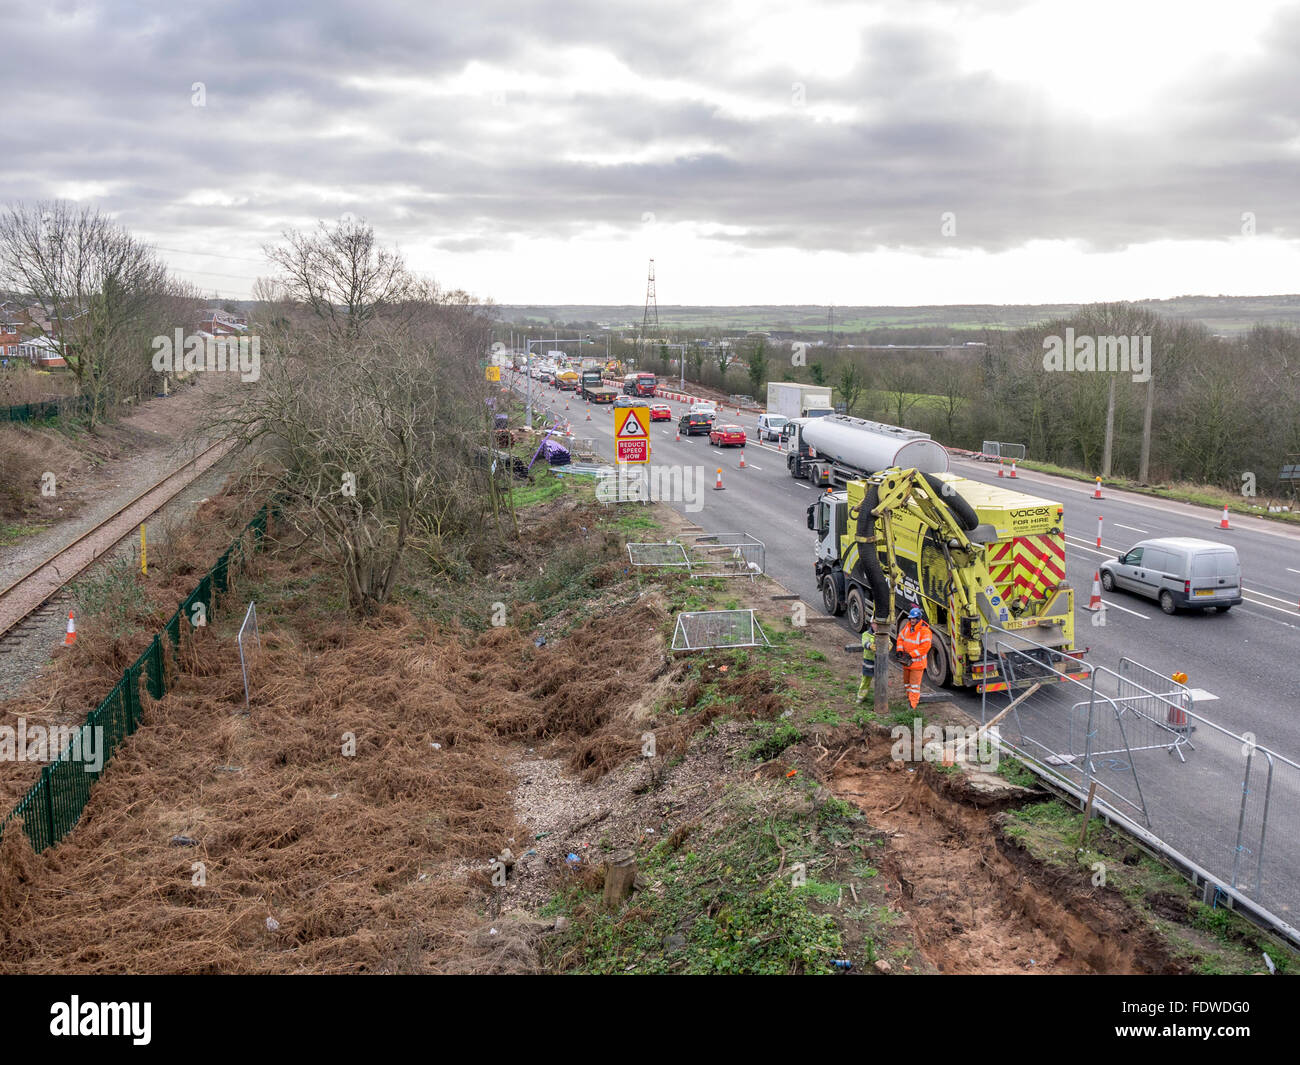 Workers on side of a coned off dual carriageway doing maintenance work. - Stock Image